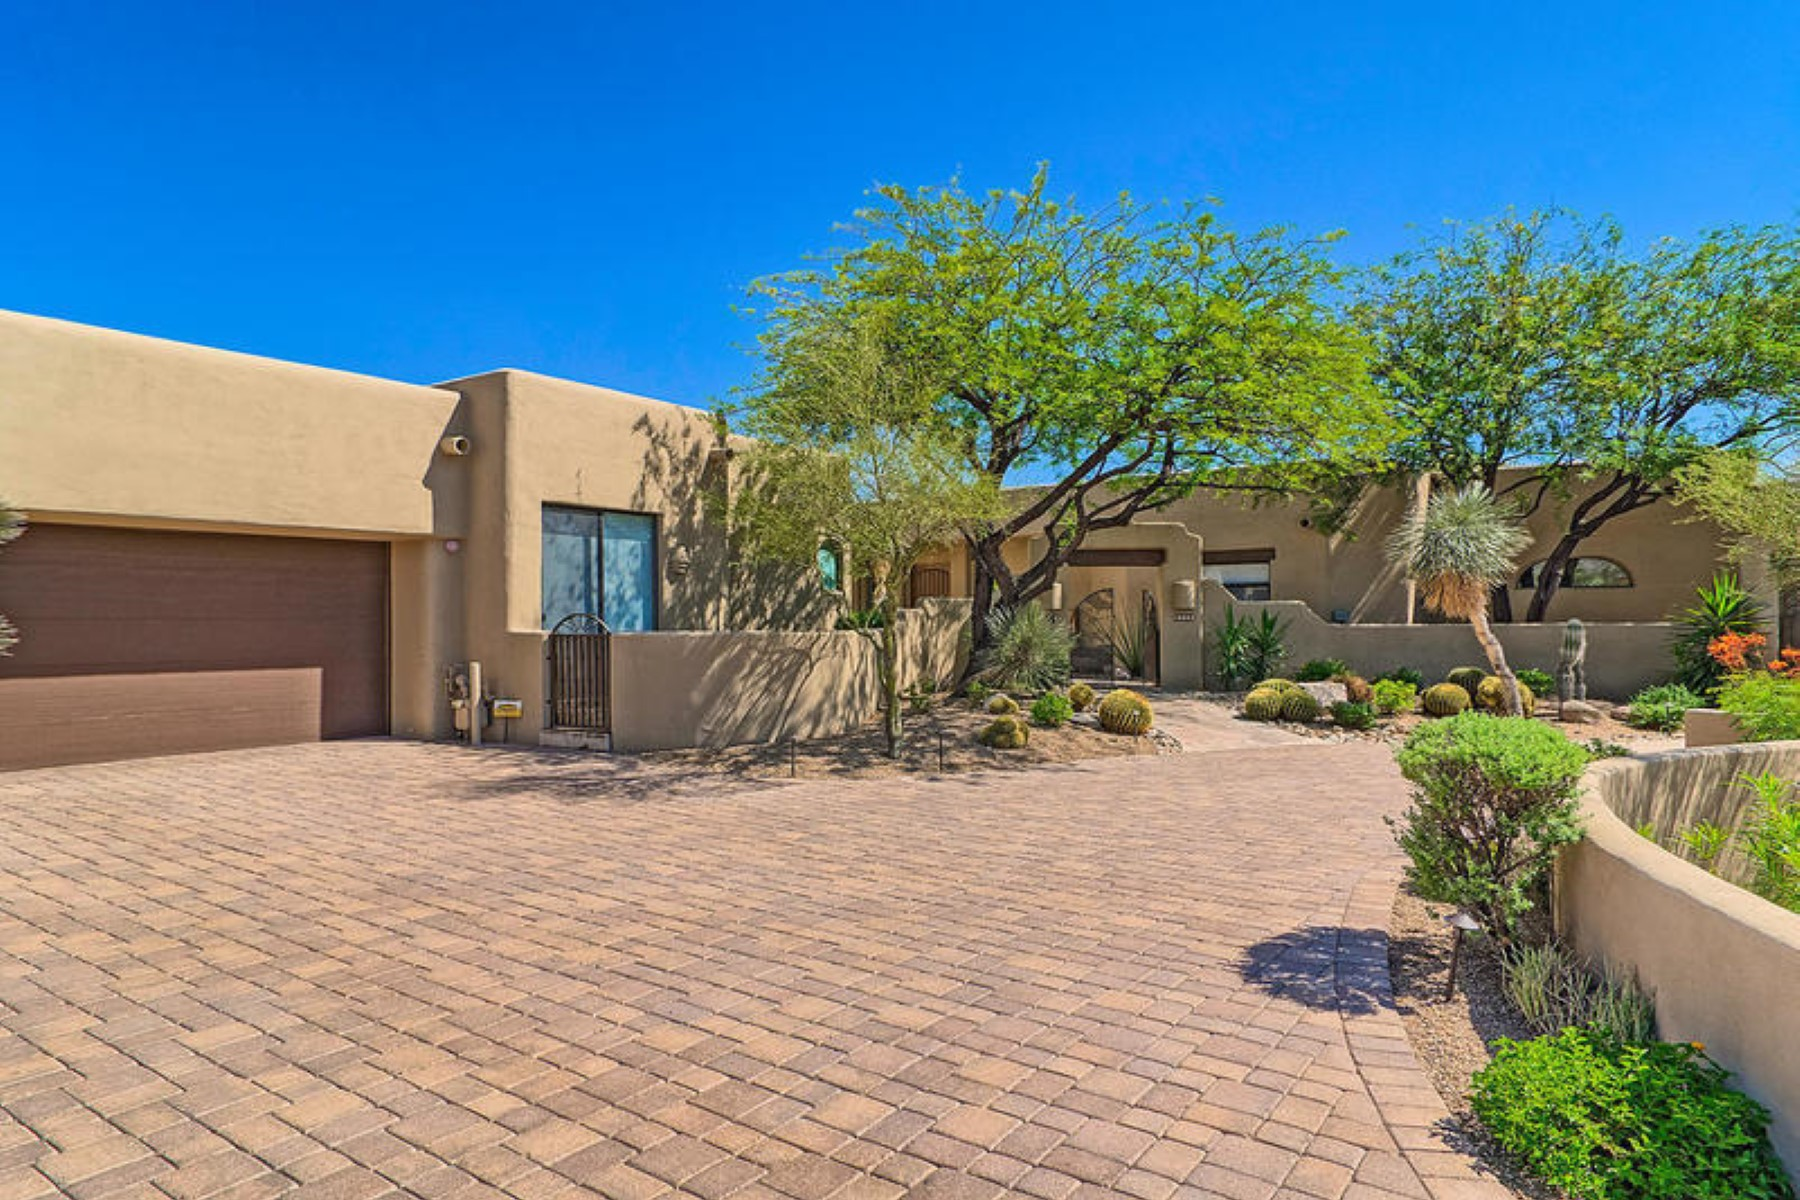 Single Family Home for Rent at Fantastic home in Desert Mountain Eagle Feather 10083 E Scopa Trl Scottsdale, Arizona 85262 United States